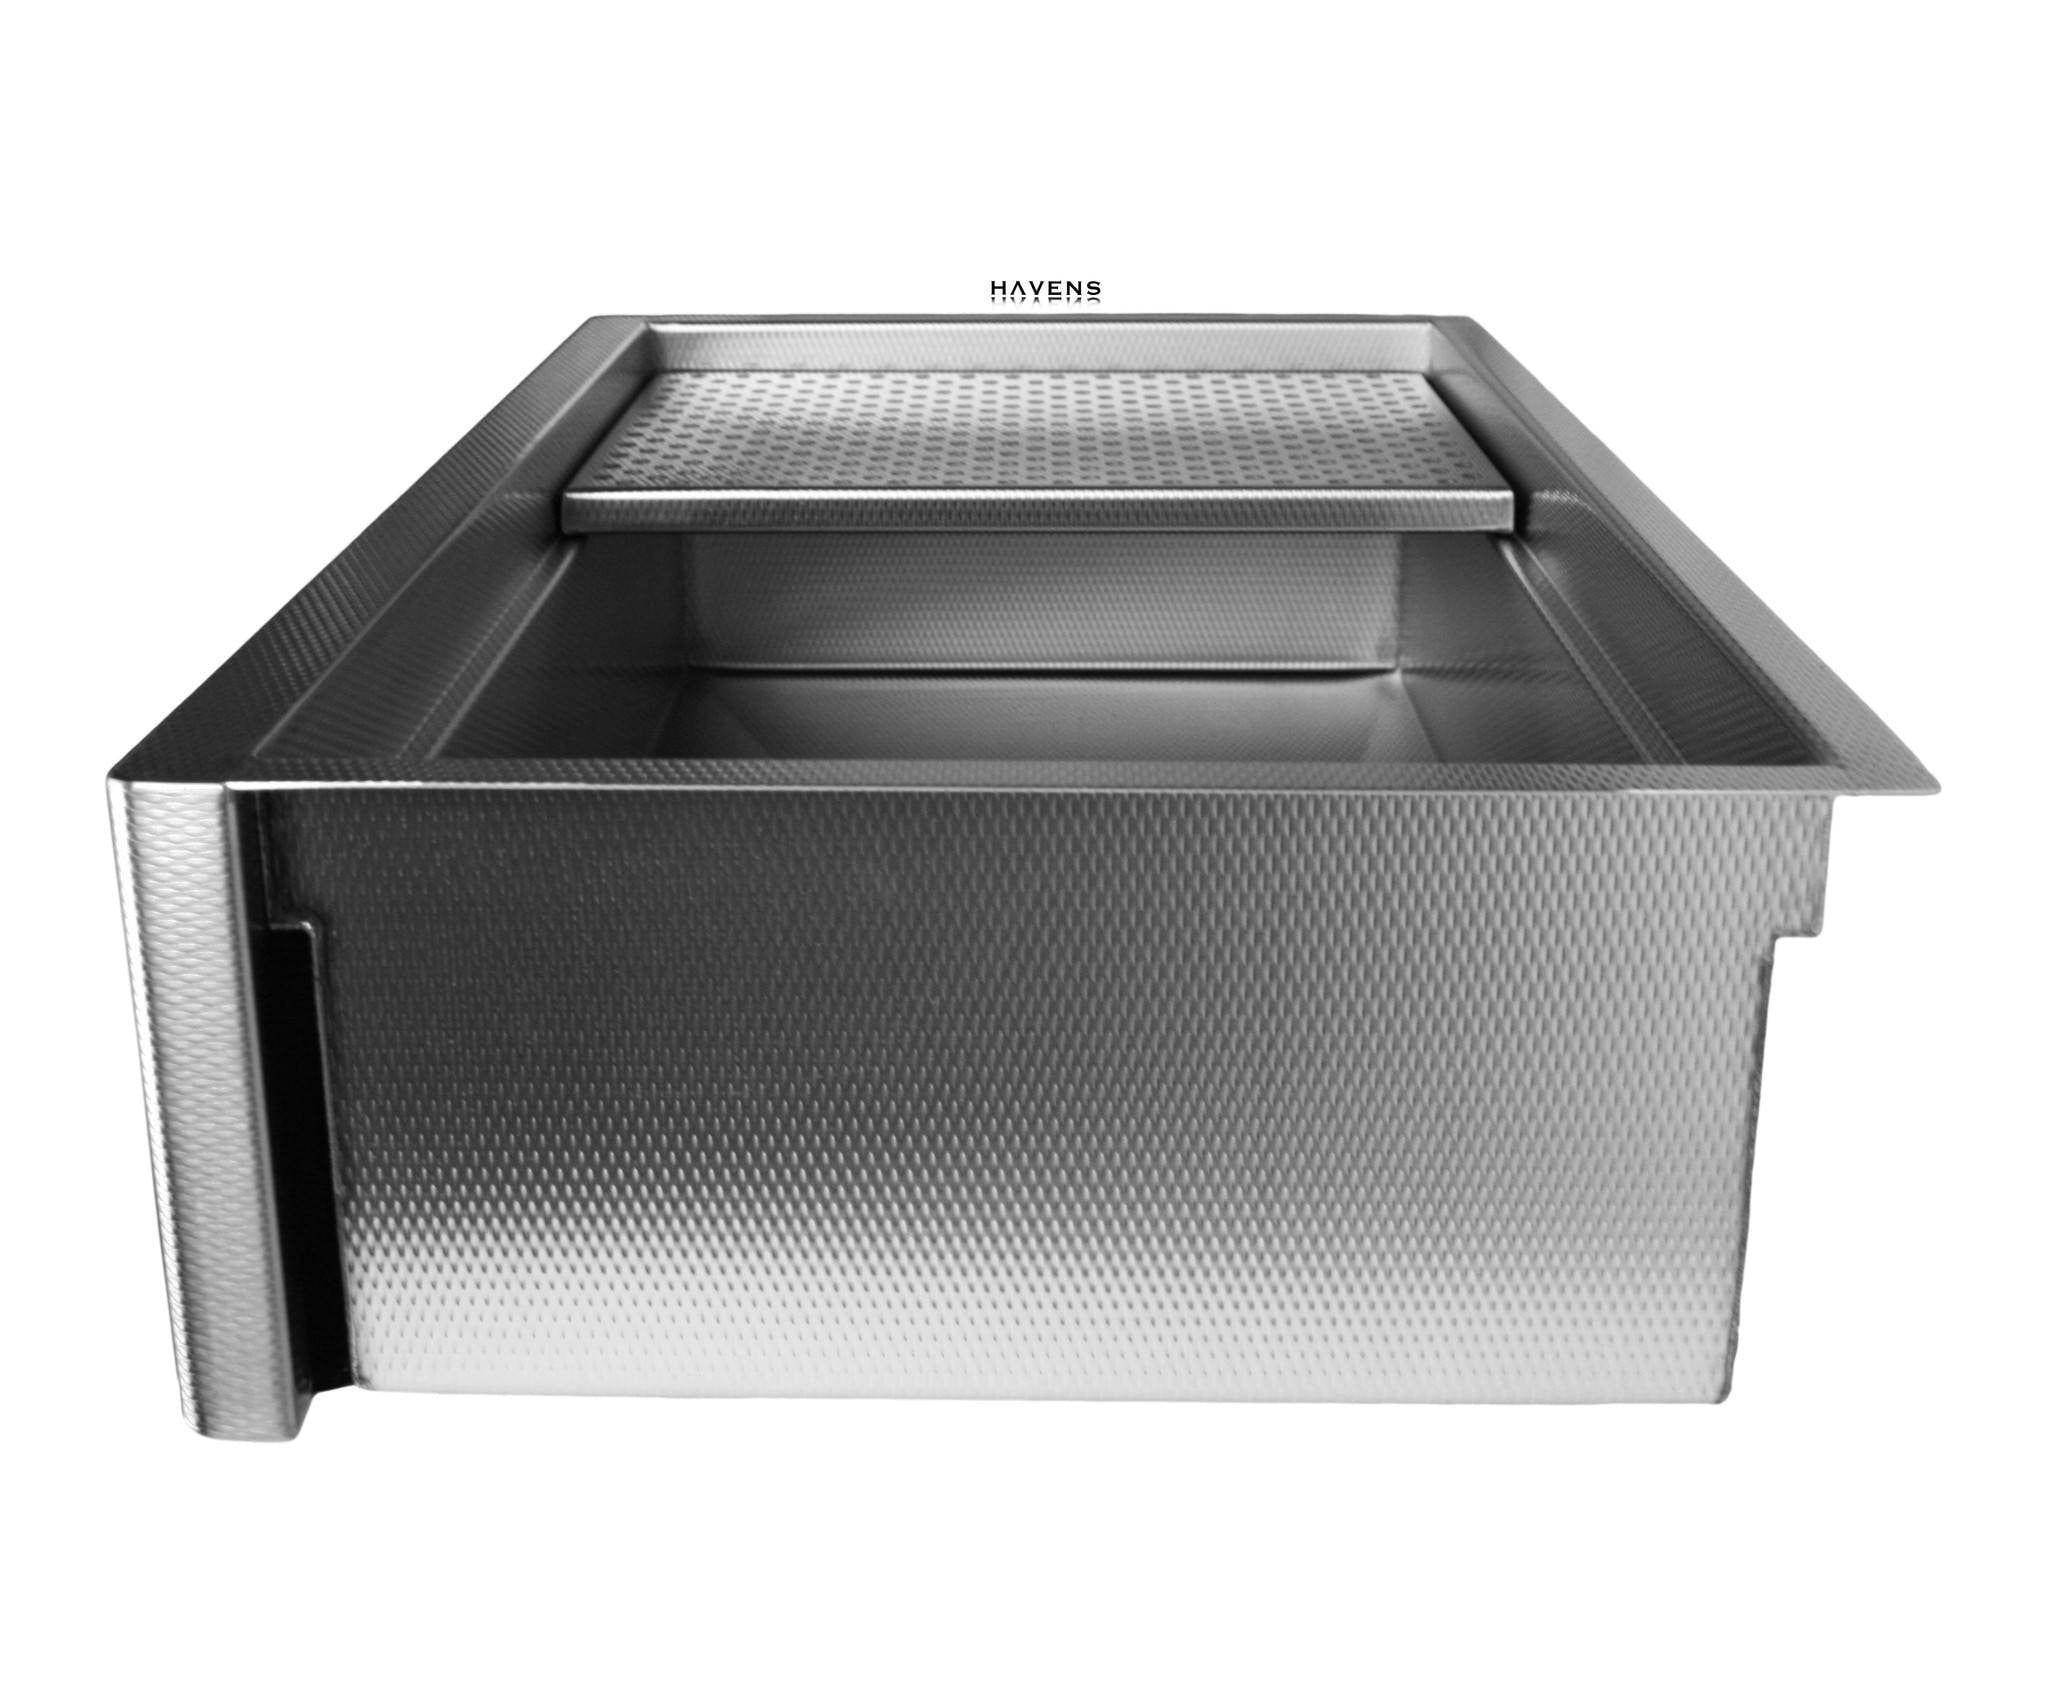 Apron front stainless steel Legacy sink